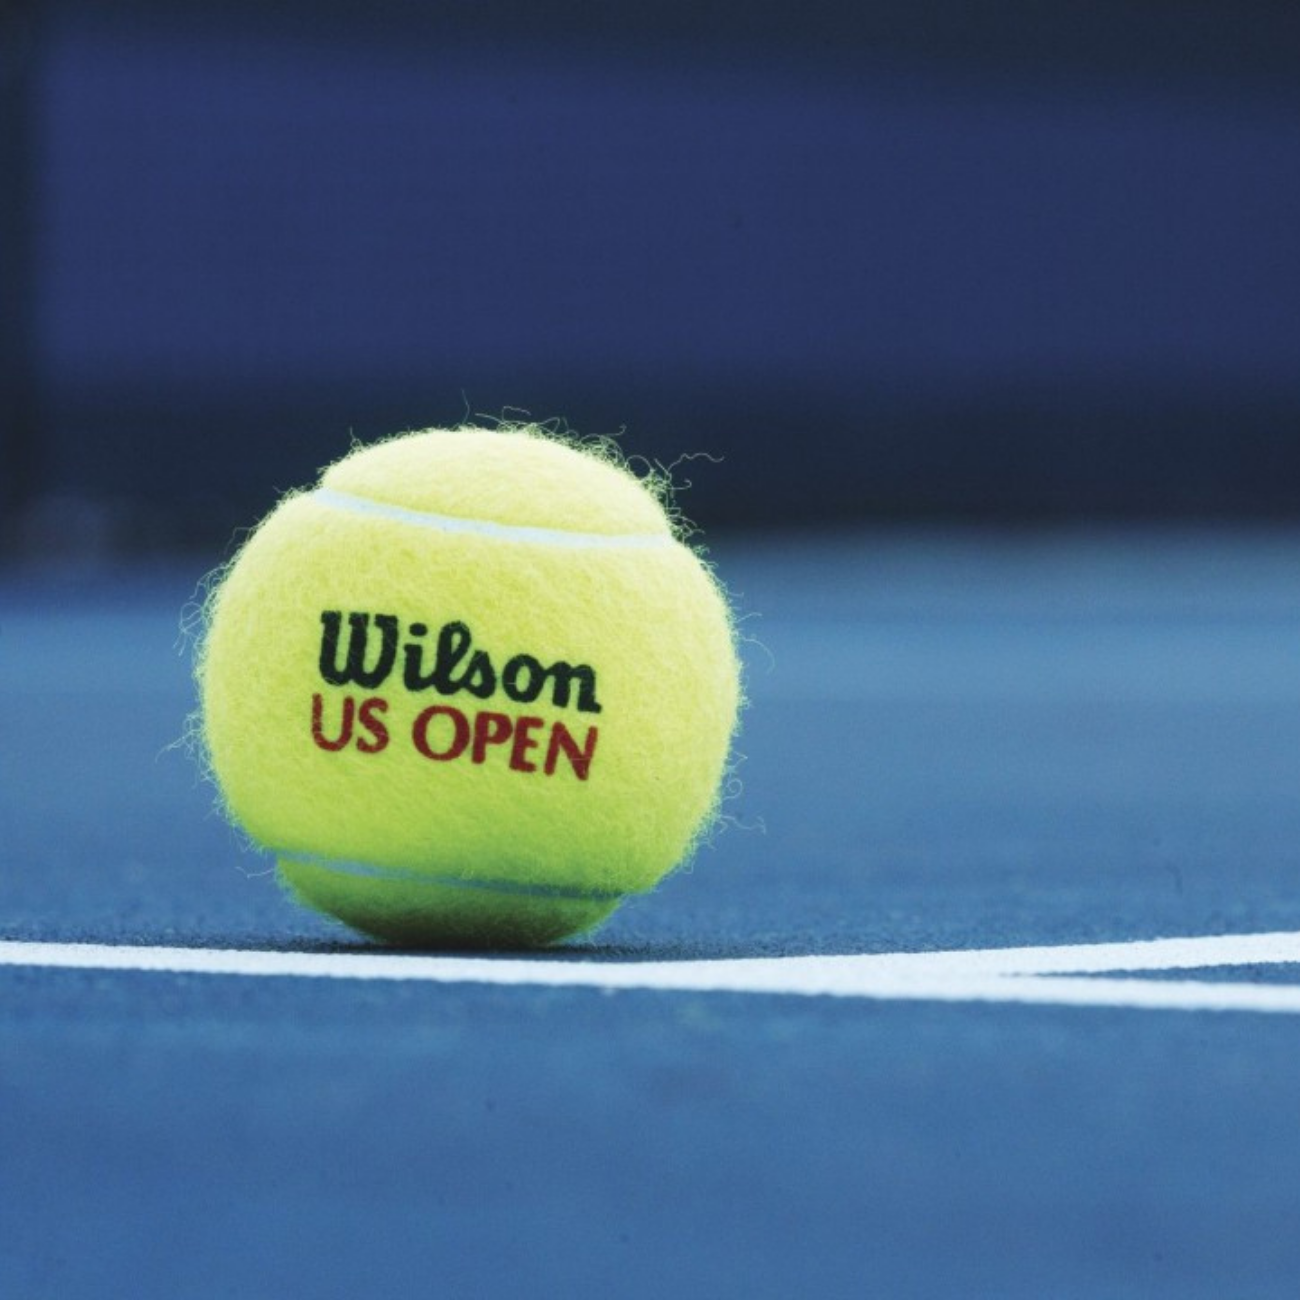 What Can We Learn From The US Open And Apply To New Business?